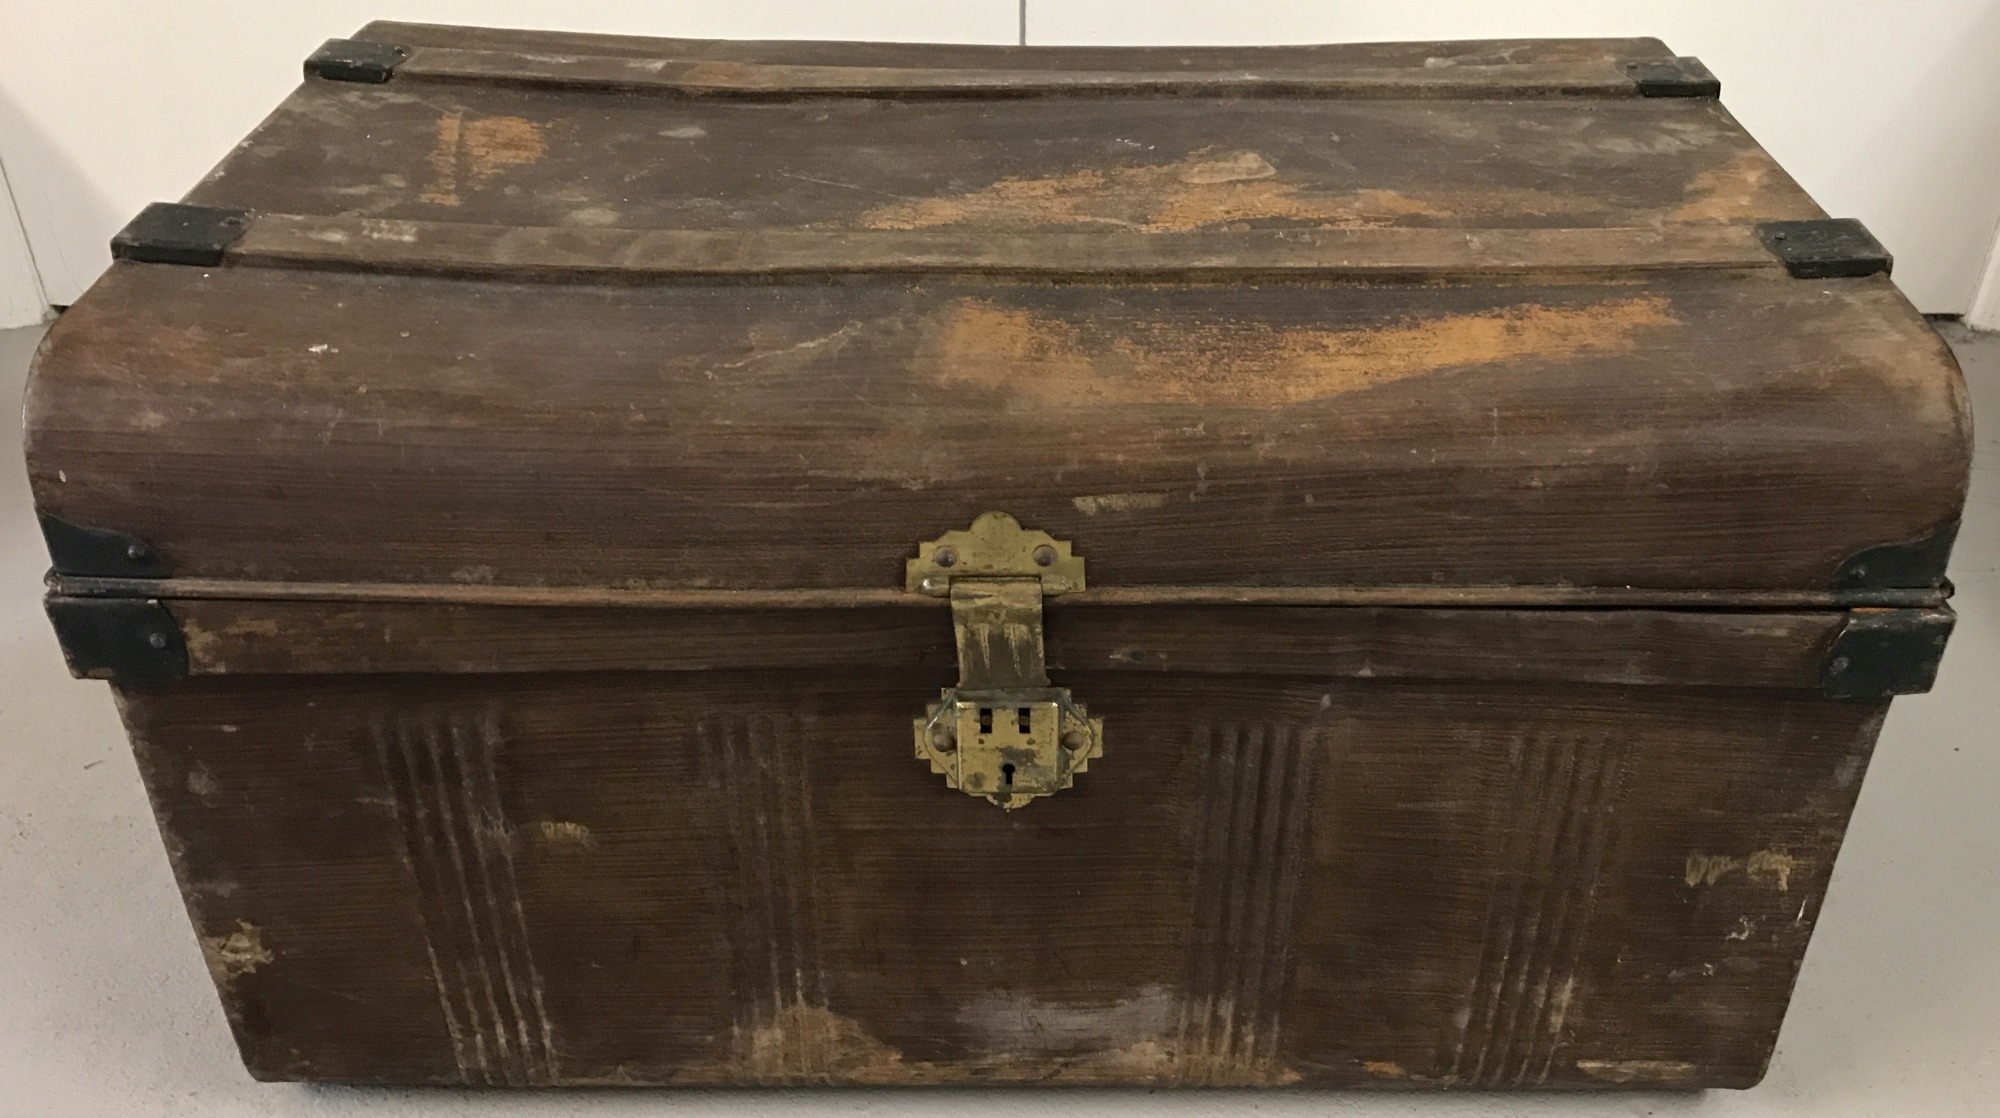 Lot 92 - A Victorian metal travelling trunk with carry handles and brass latch/lock fixings.